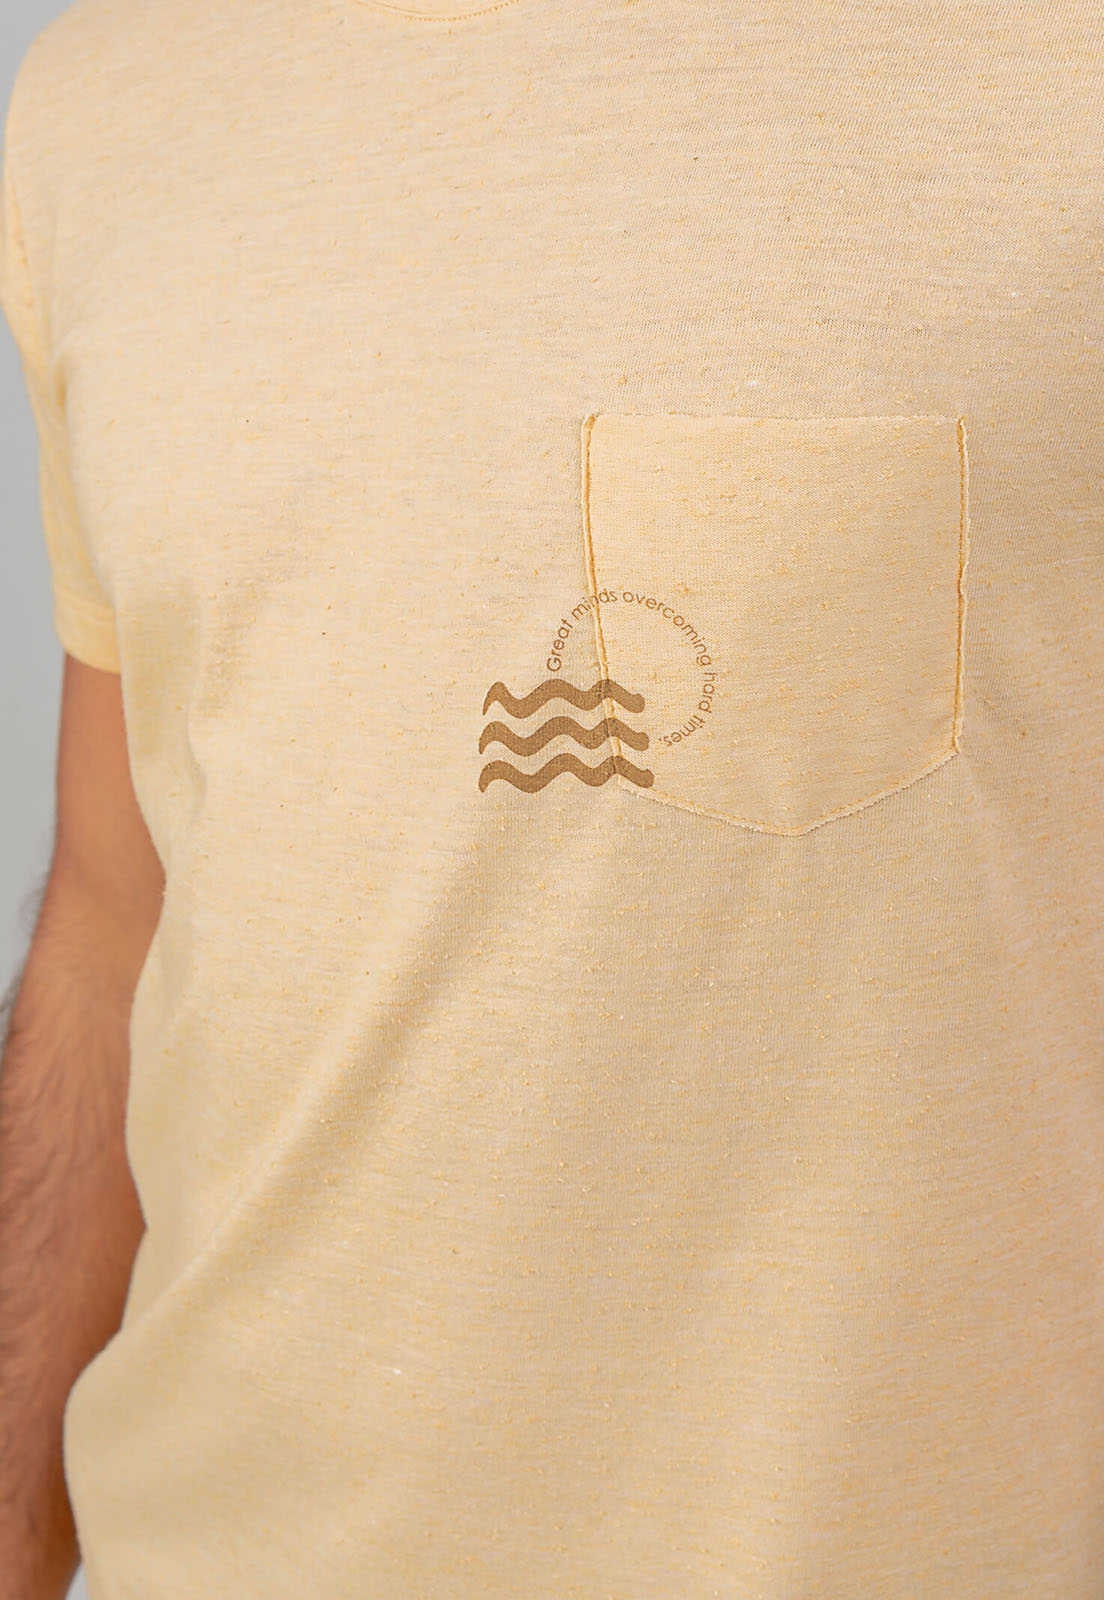 T-shirt Terra Great melty  - melty surf & Co.